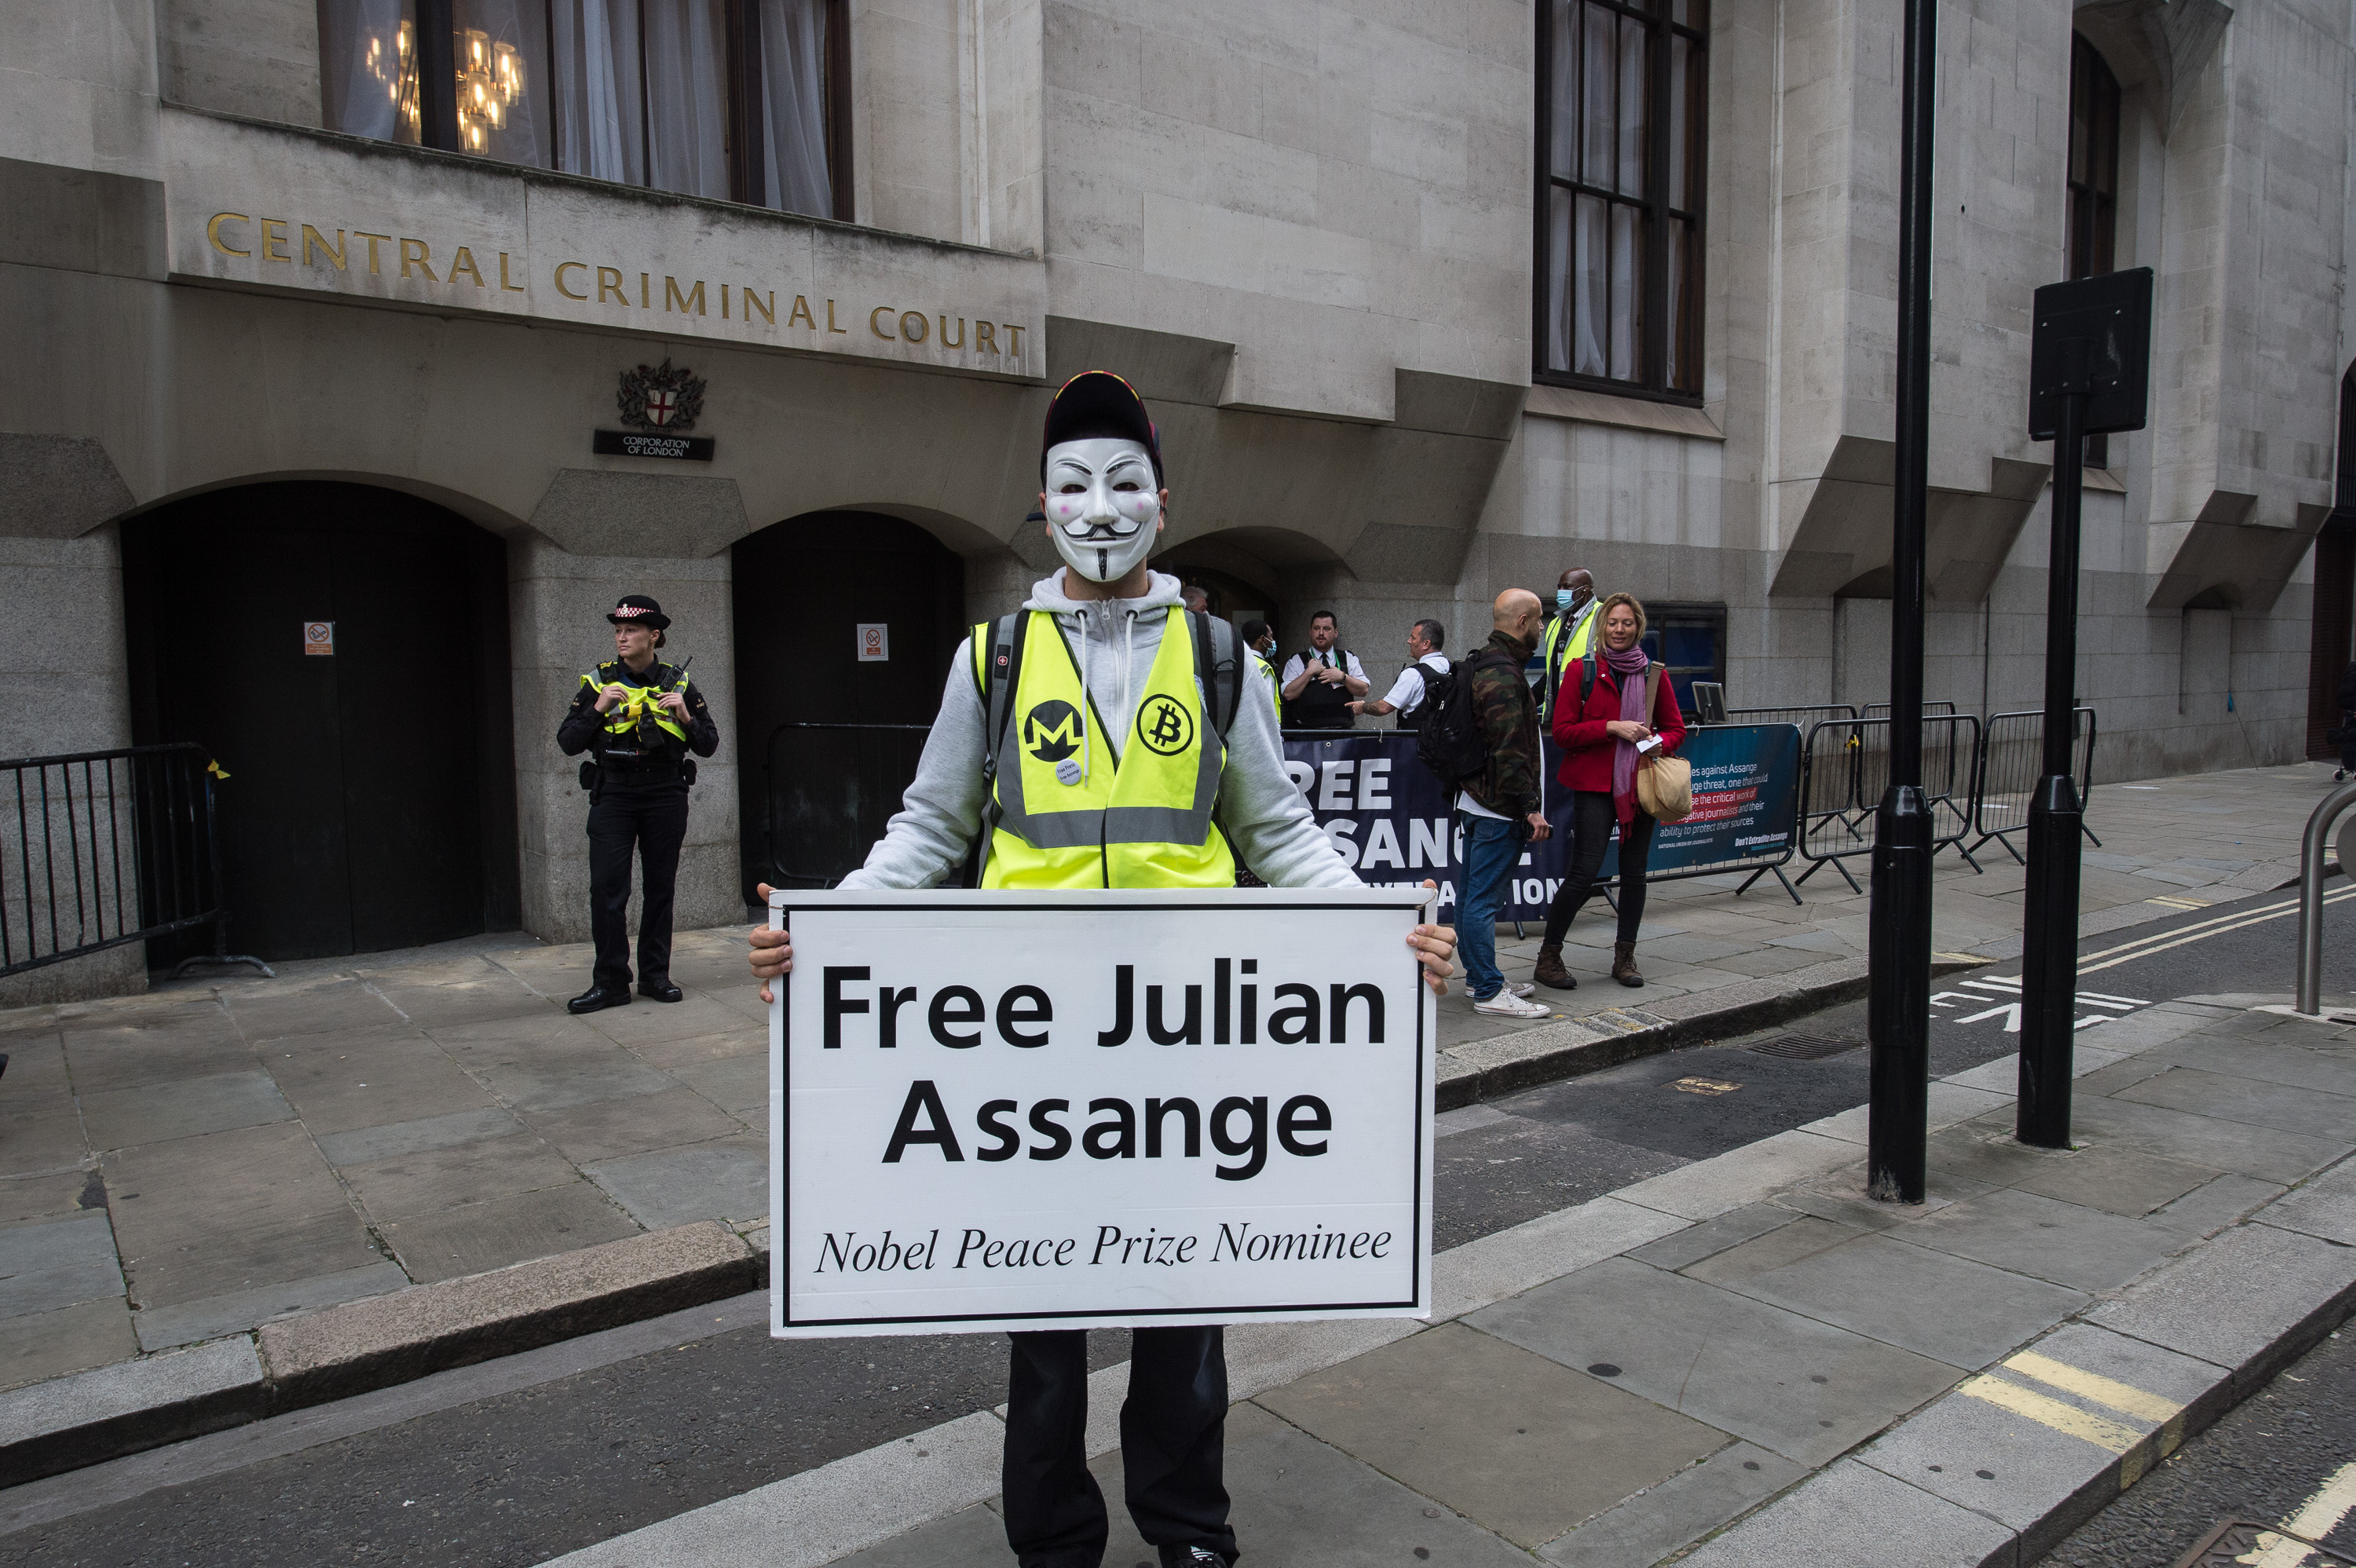 Assange Extradition Hearing Photos: September 07, 2020